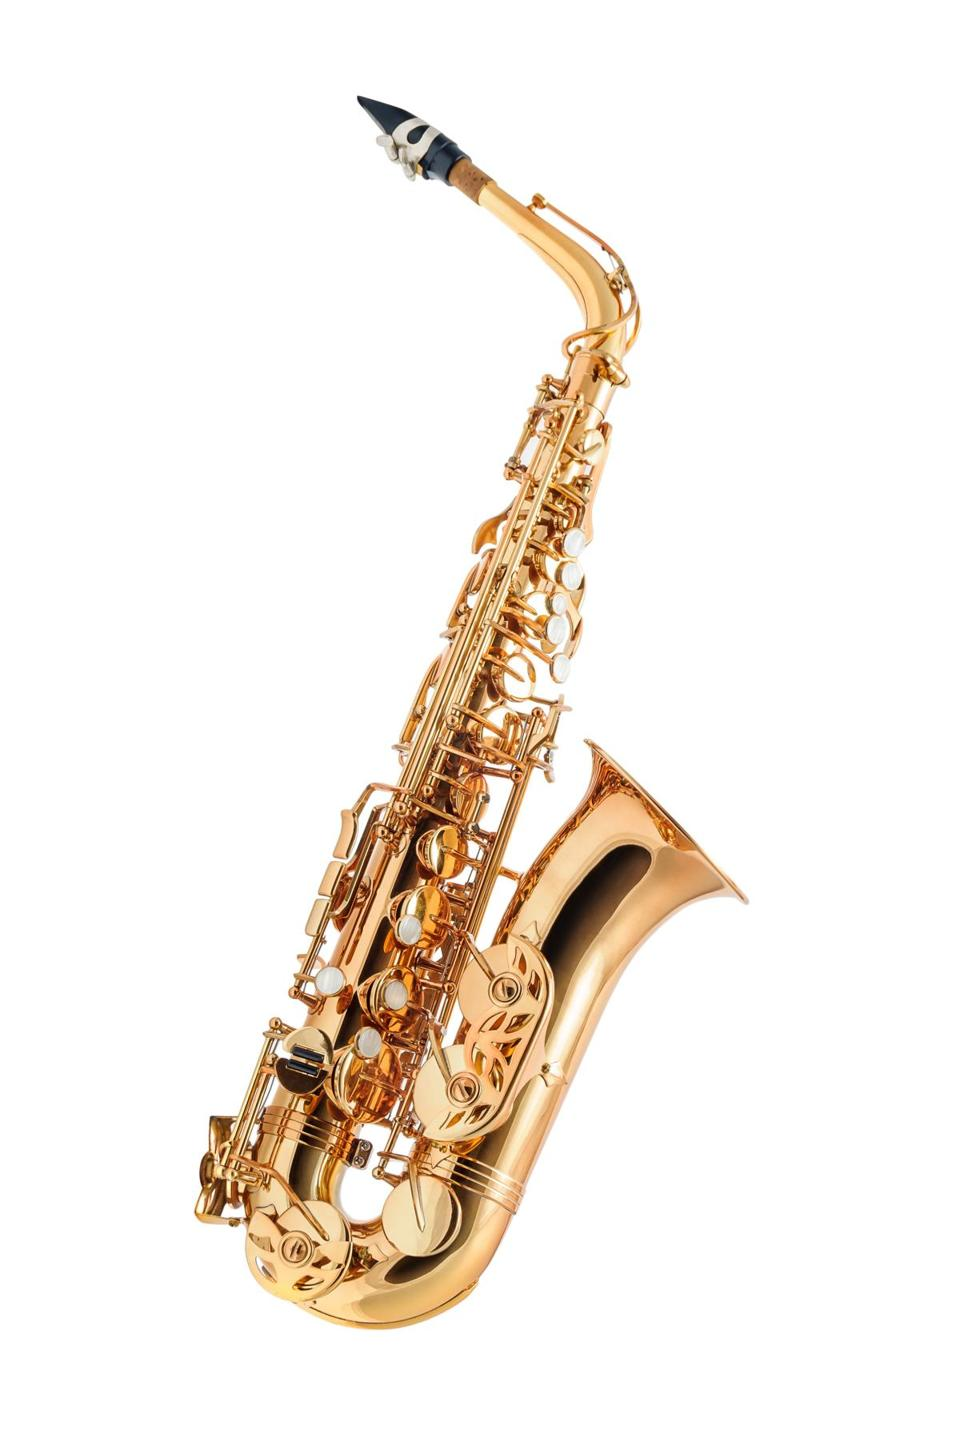 Golden alto saxophone classical instrument isolated on white